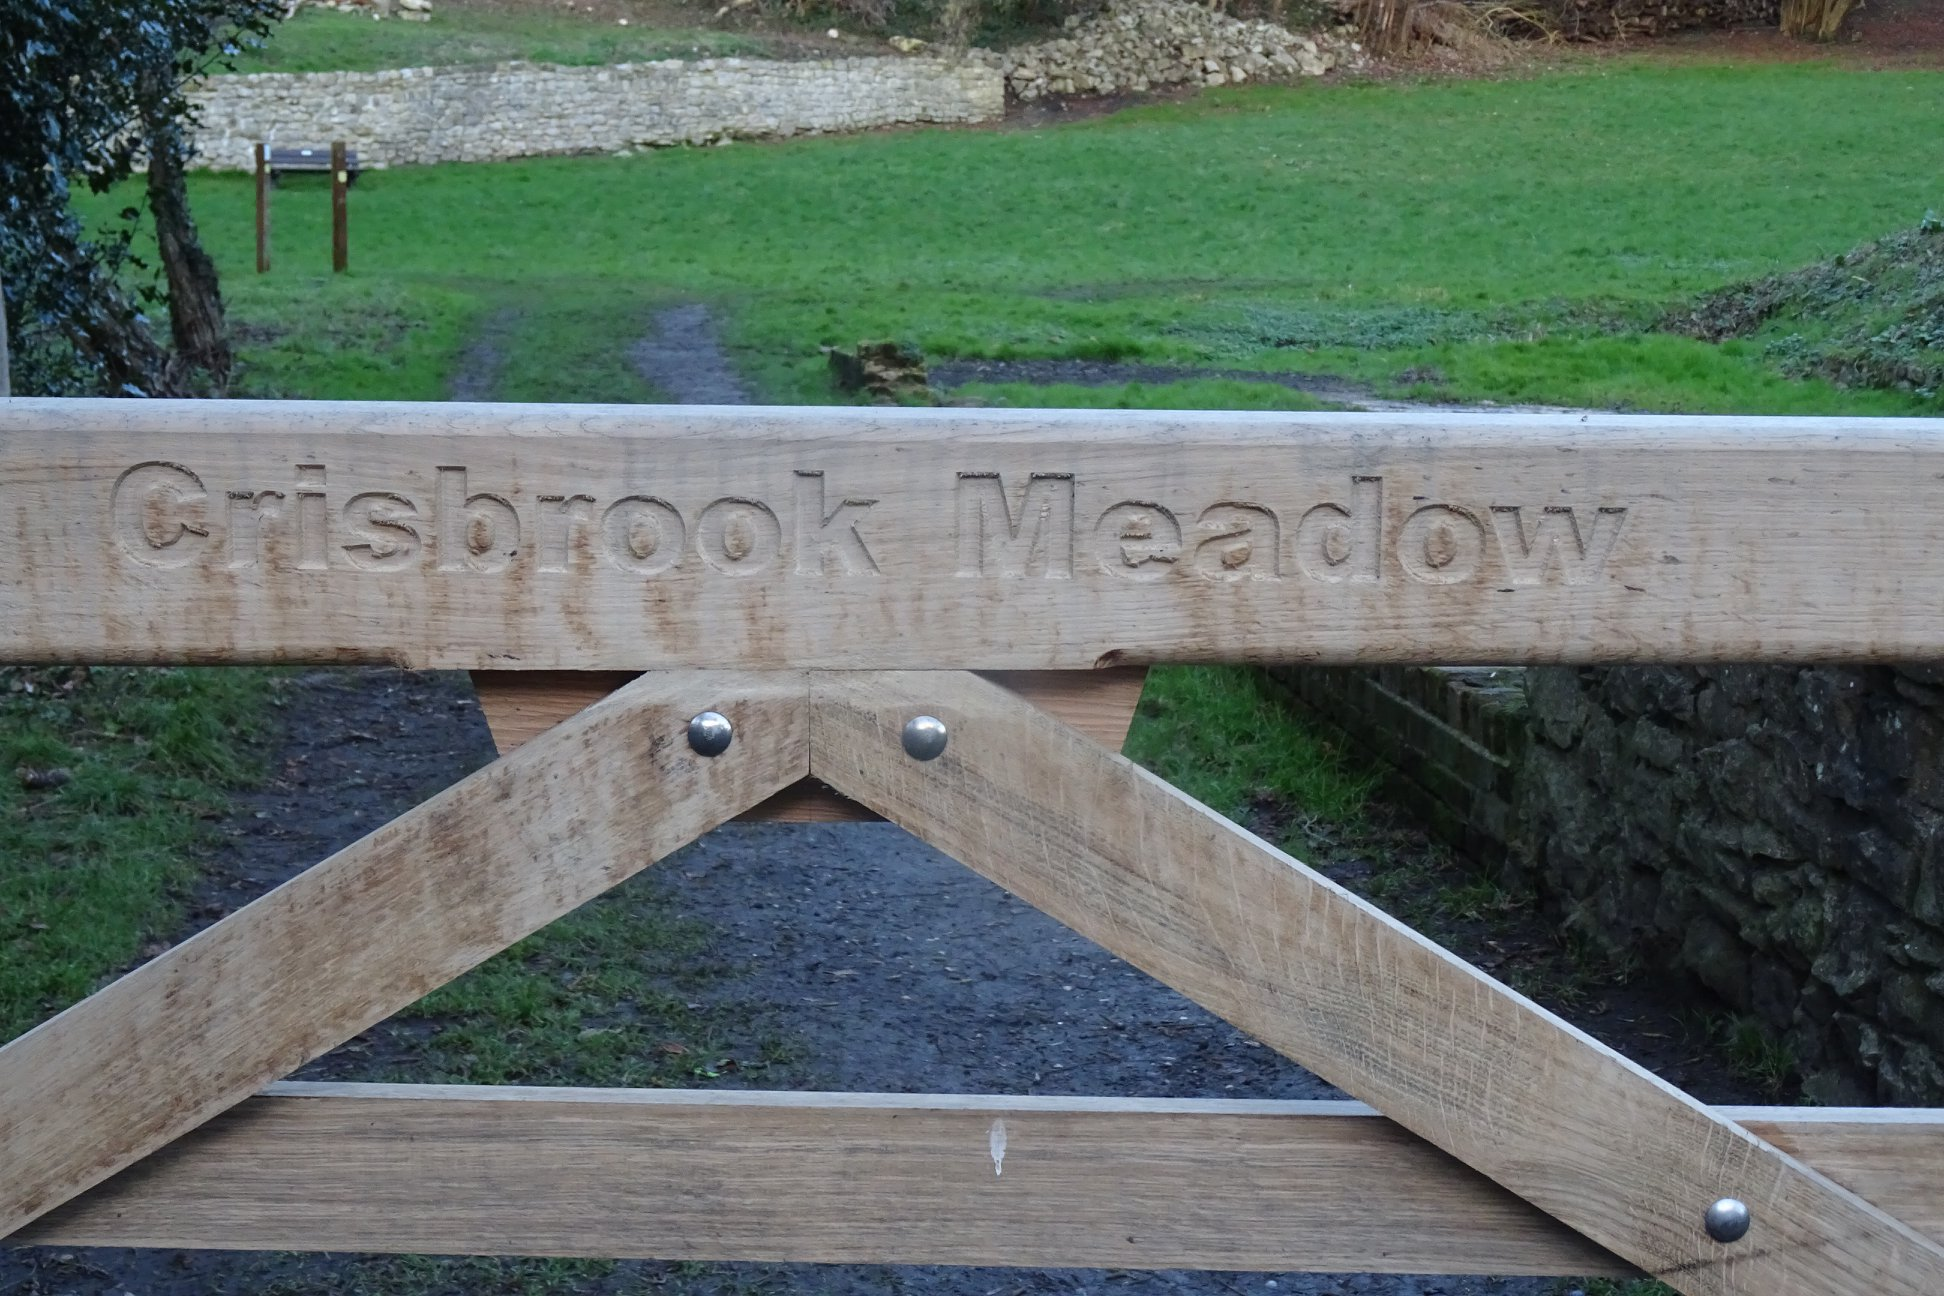 Crisbrook Meadow Gate - 1